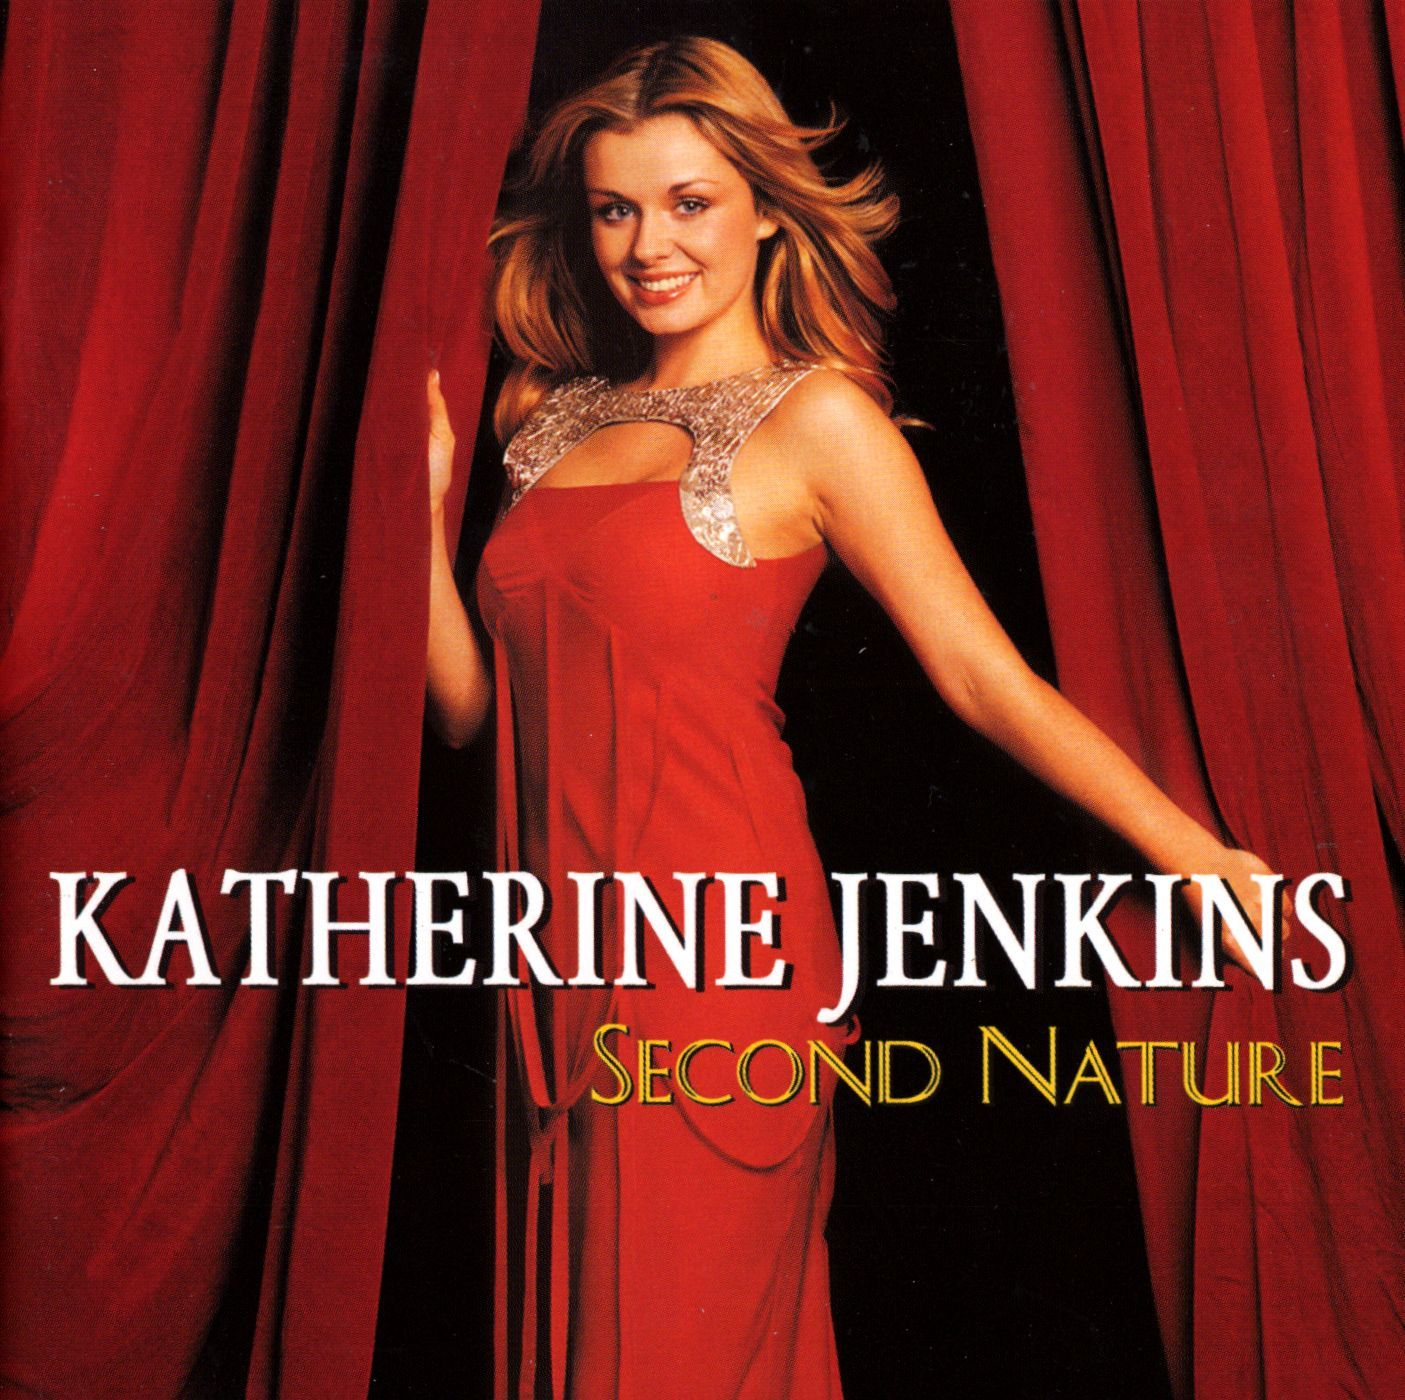 Katherine Jenkins - Second Nature album cover